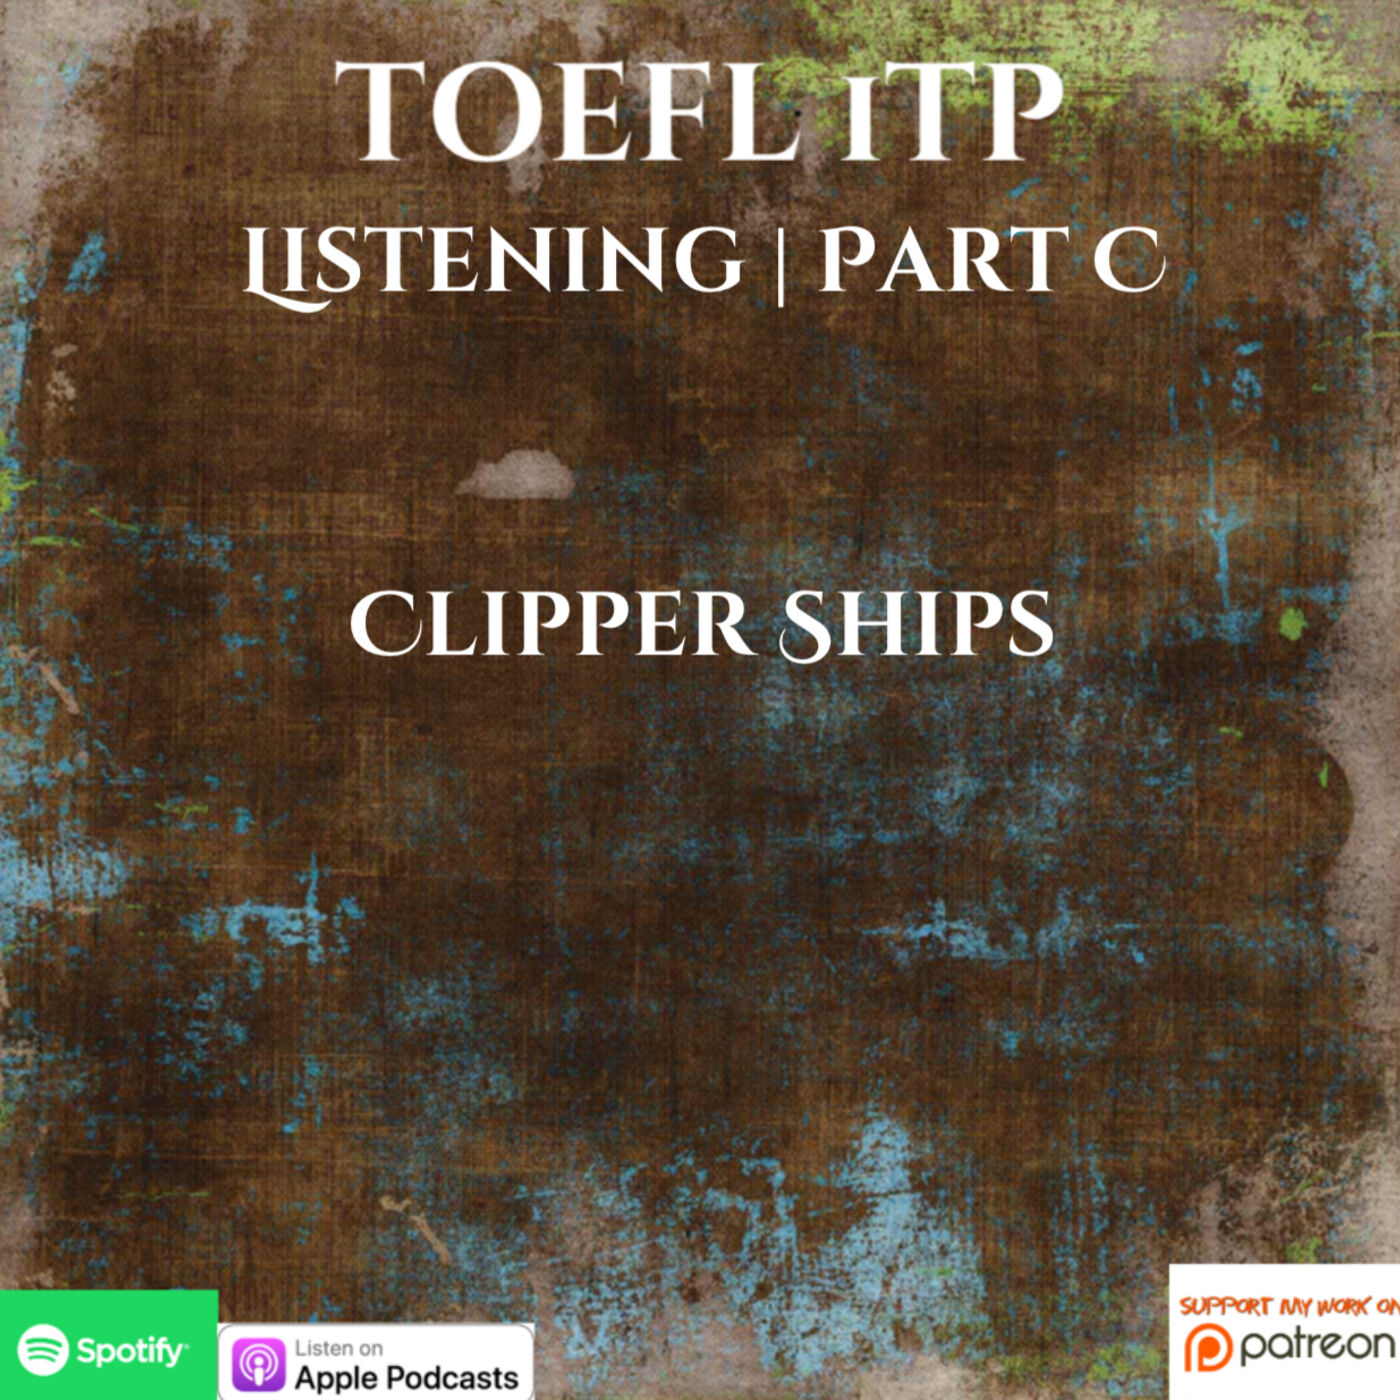 TOEFL iTP | Listening | Part C | Clipper Ships